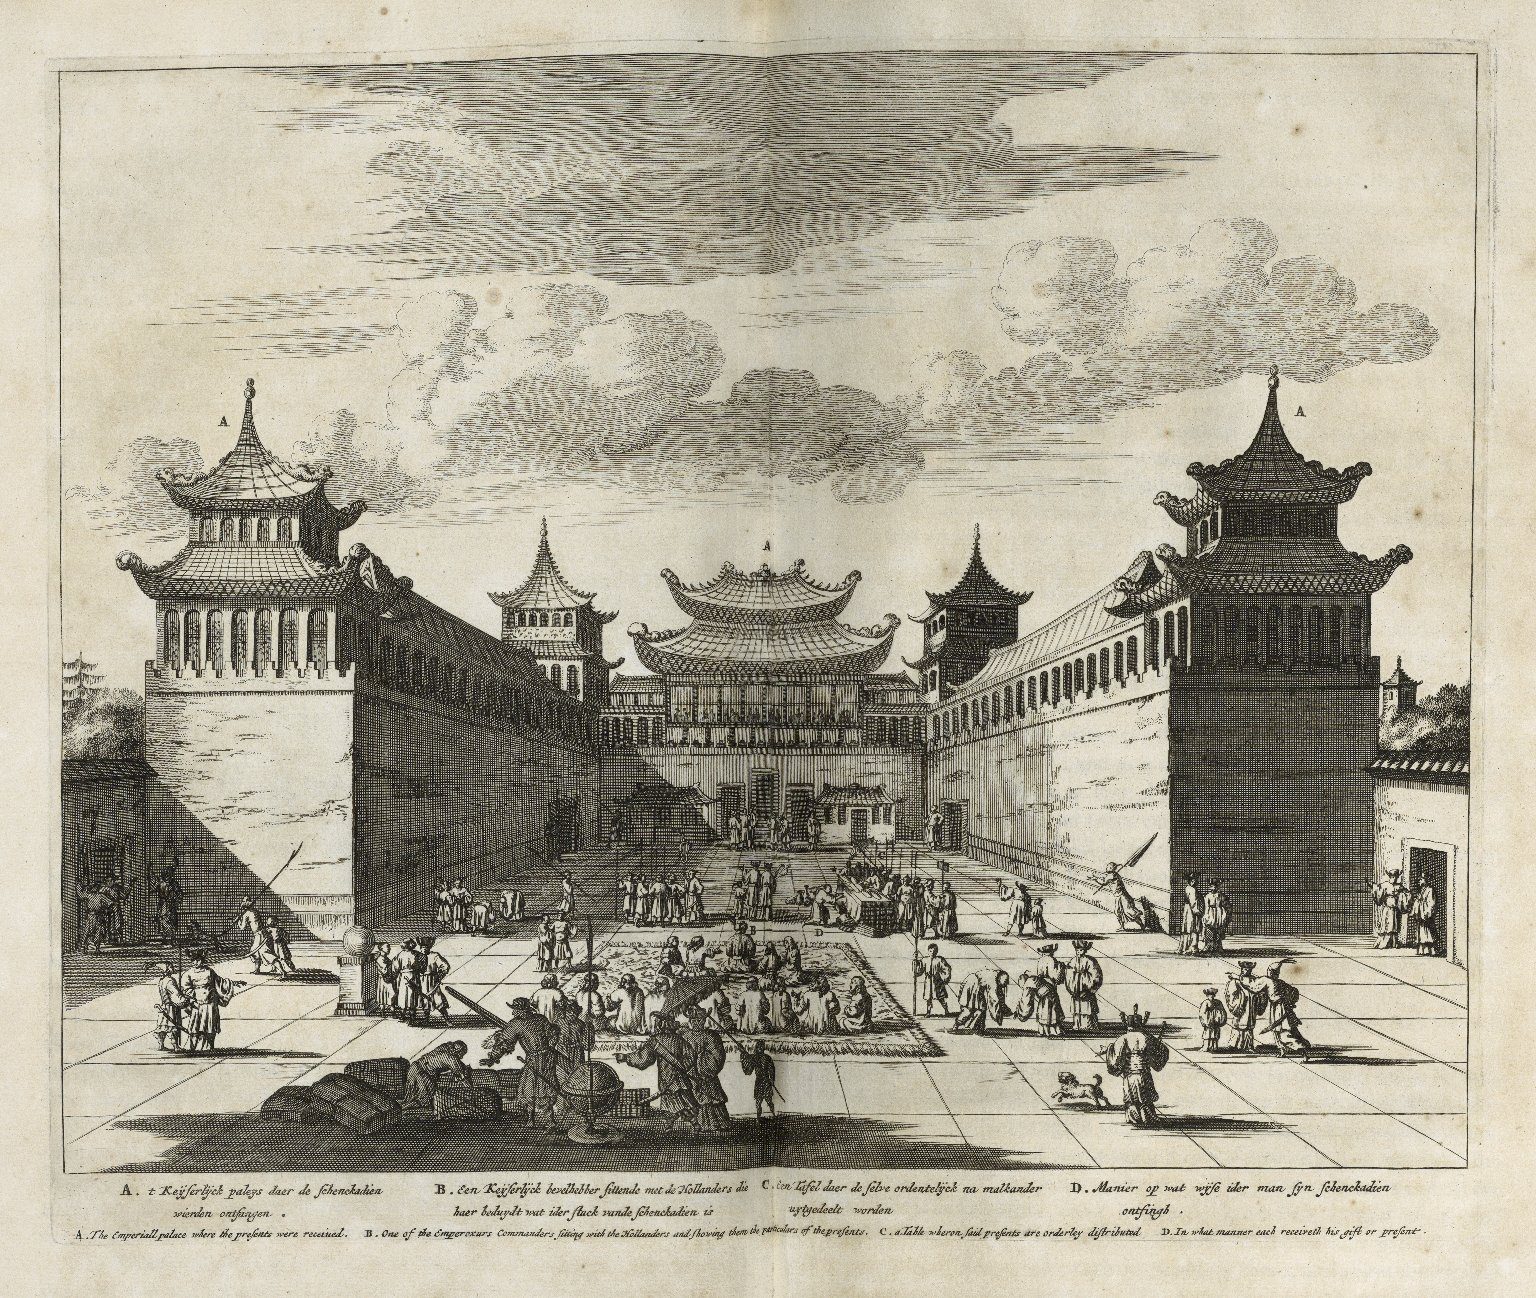 Atlas Chinensis: being a second part of a relation of remarkable passages in two embassies from the East-India Company of the United Provinces, to the vice-roy Singlamong and General Taising Lipovi, and to Konchi, Emperor of China and East-Tartary. With a relation of the Netherlanders assisting the Tartar against Coxinga, and the Chinese fleet, who till then were masters of the sea. And a more exact geographical description than formerly, both of the whole empire of China in general, and in particular of every of the fifteen provinces. Collected out of their several writings and journals, by Arnoldus Montanus. English'd, and adorn'd with above a hundred several sculptures, by John Ogilby, Esq; master of His Majesty's revels in the kingdom of Ireland.